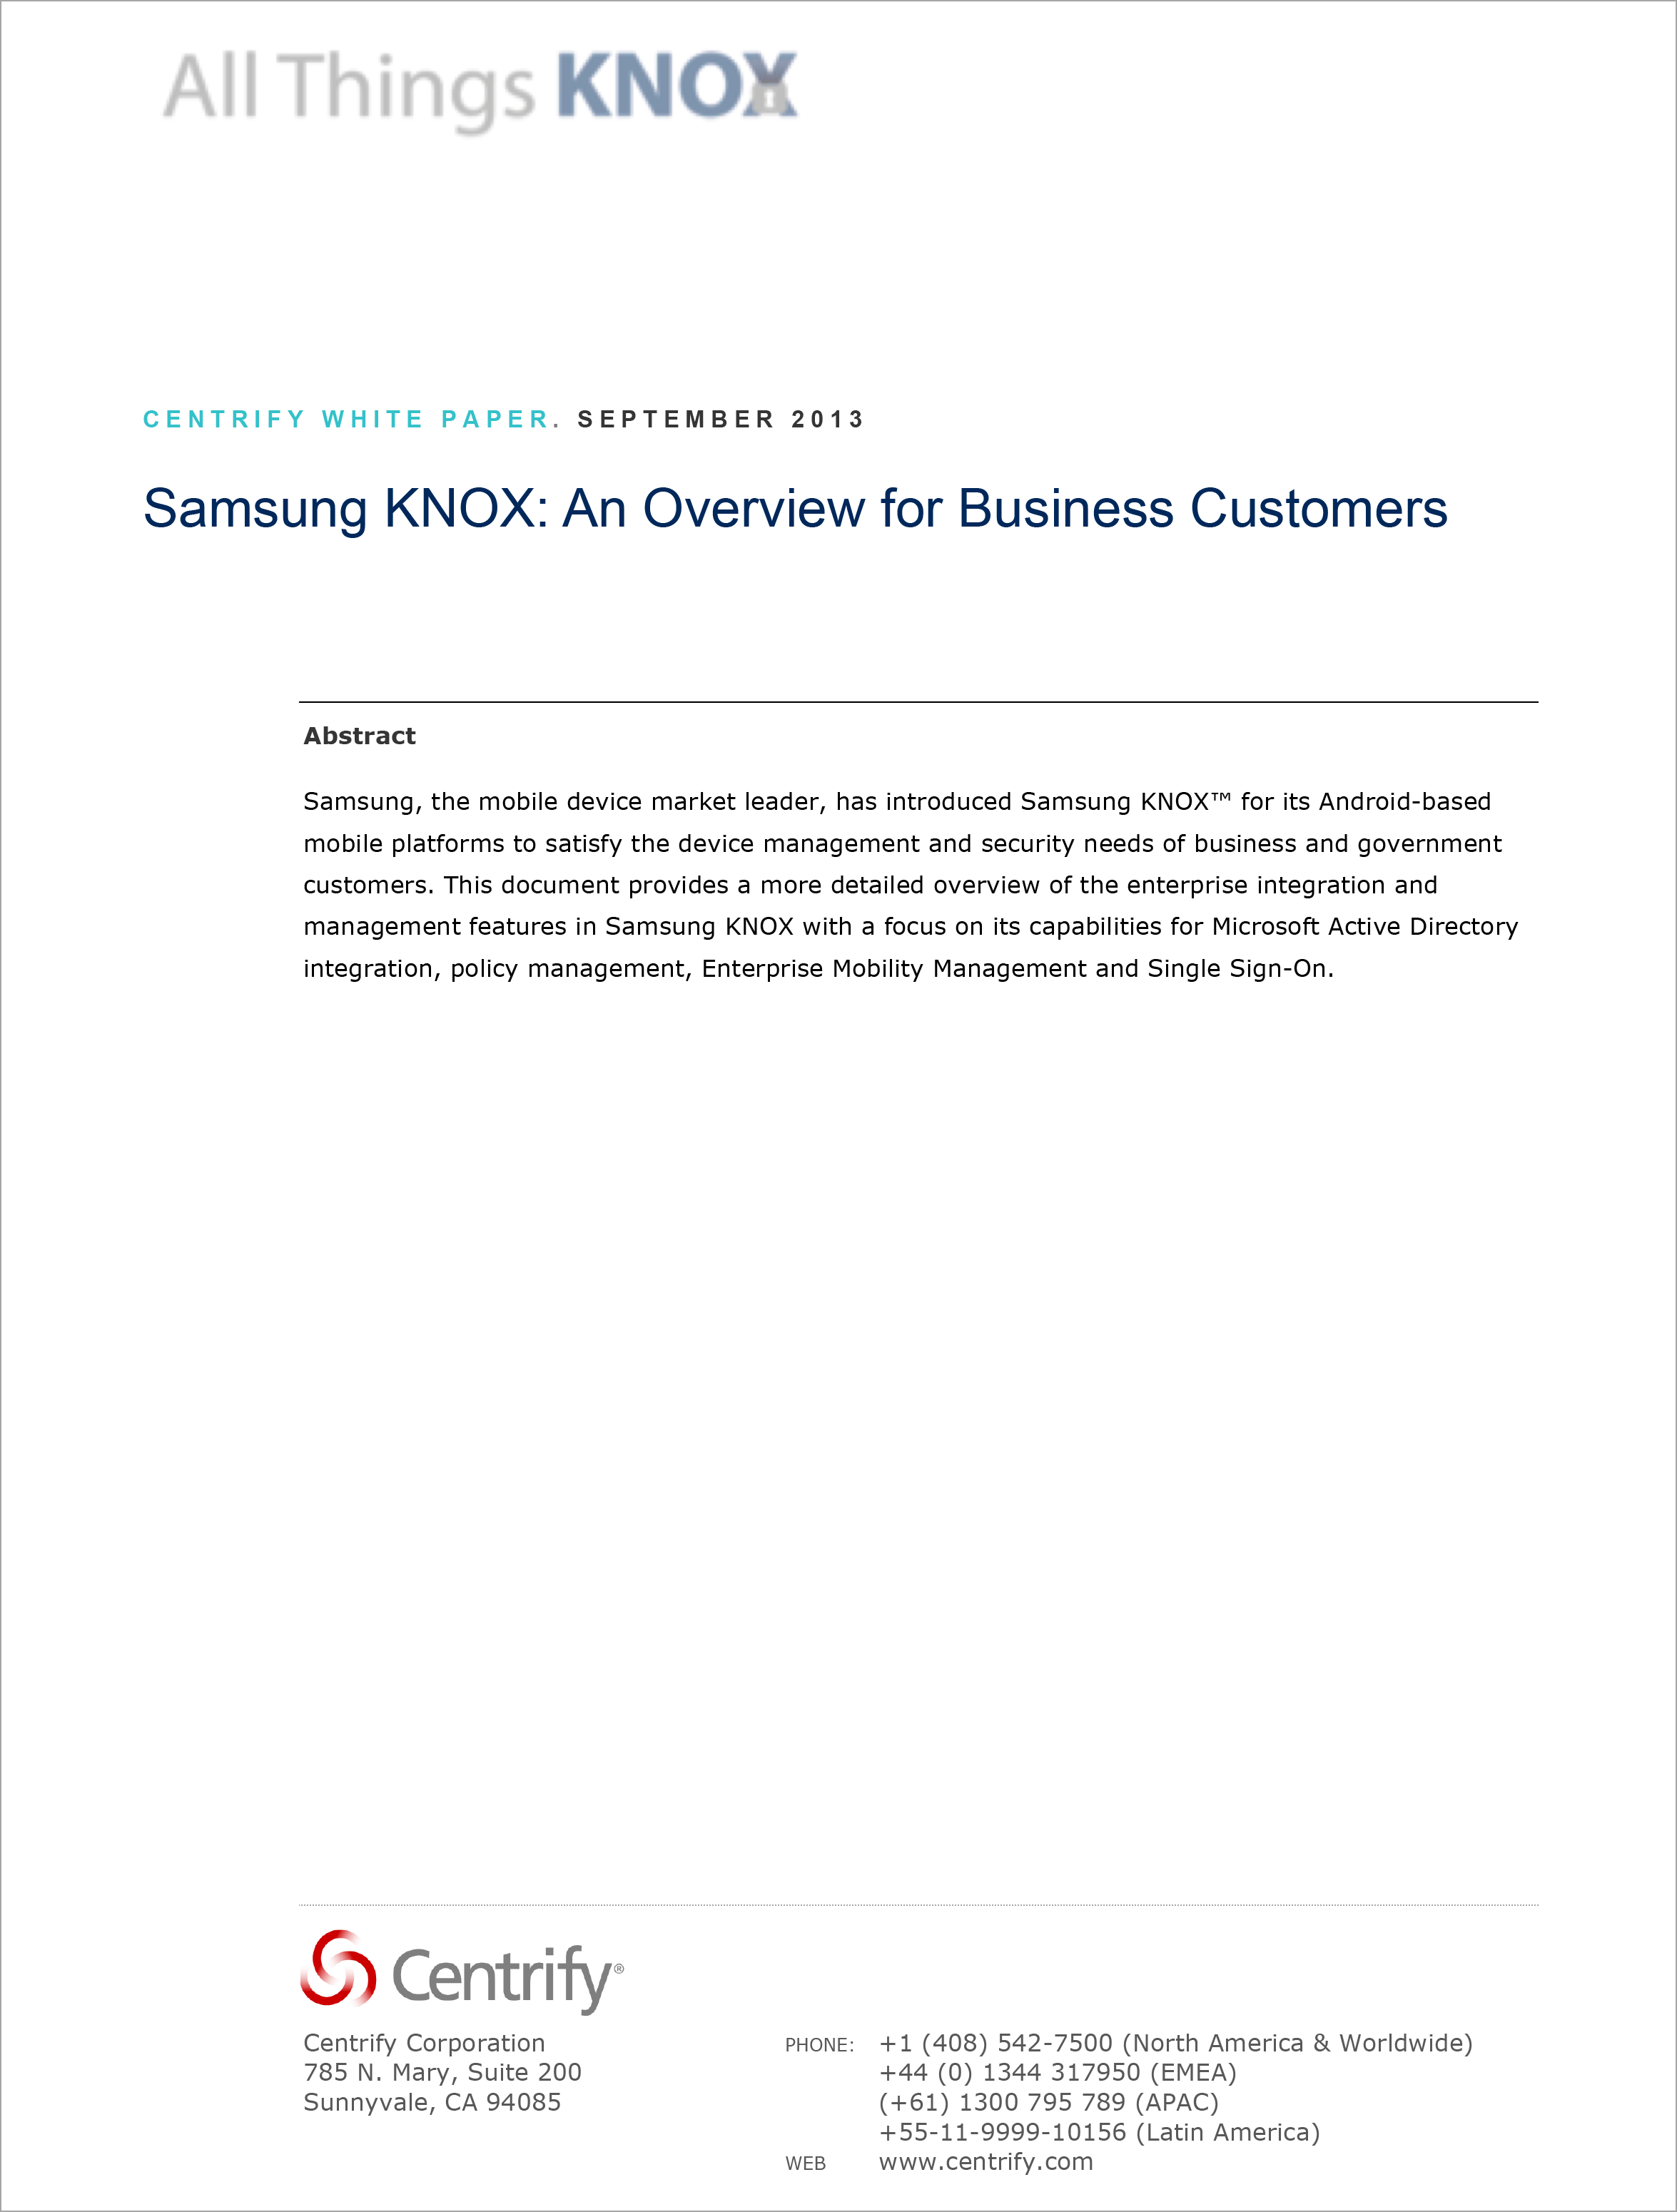 Samsung KNOX: An Overview for Business Customers